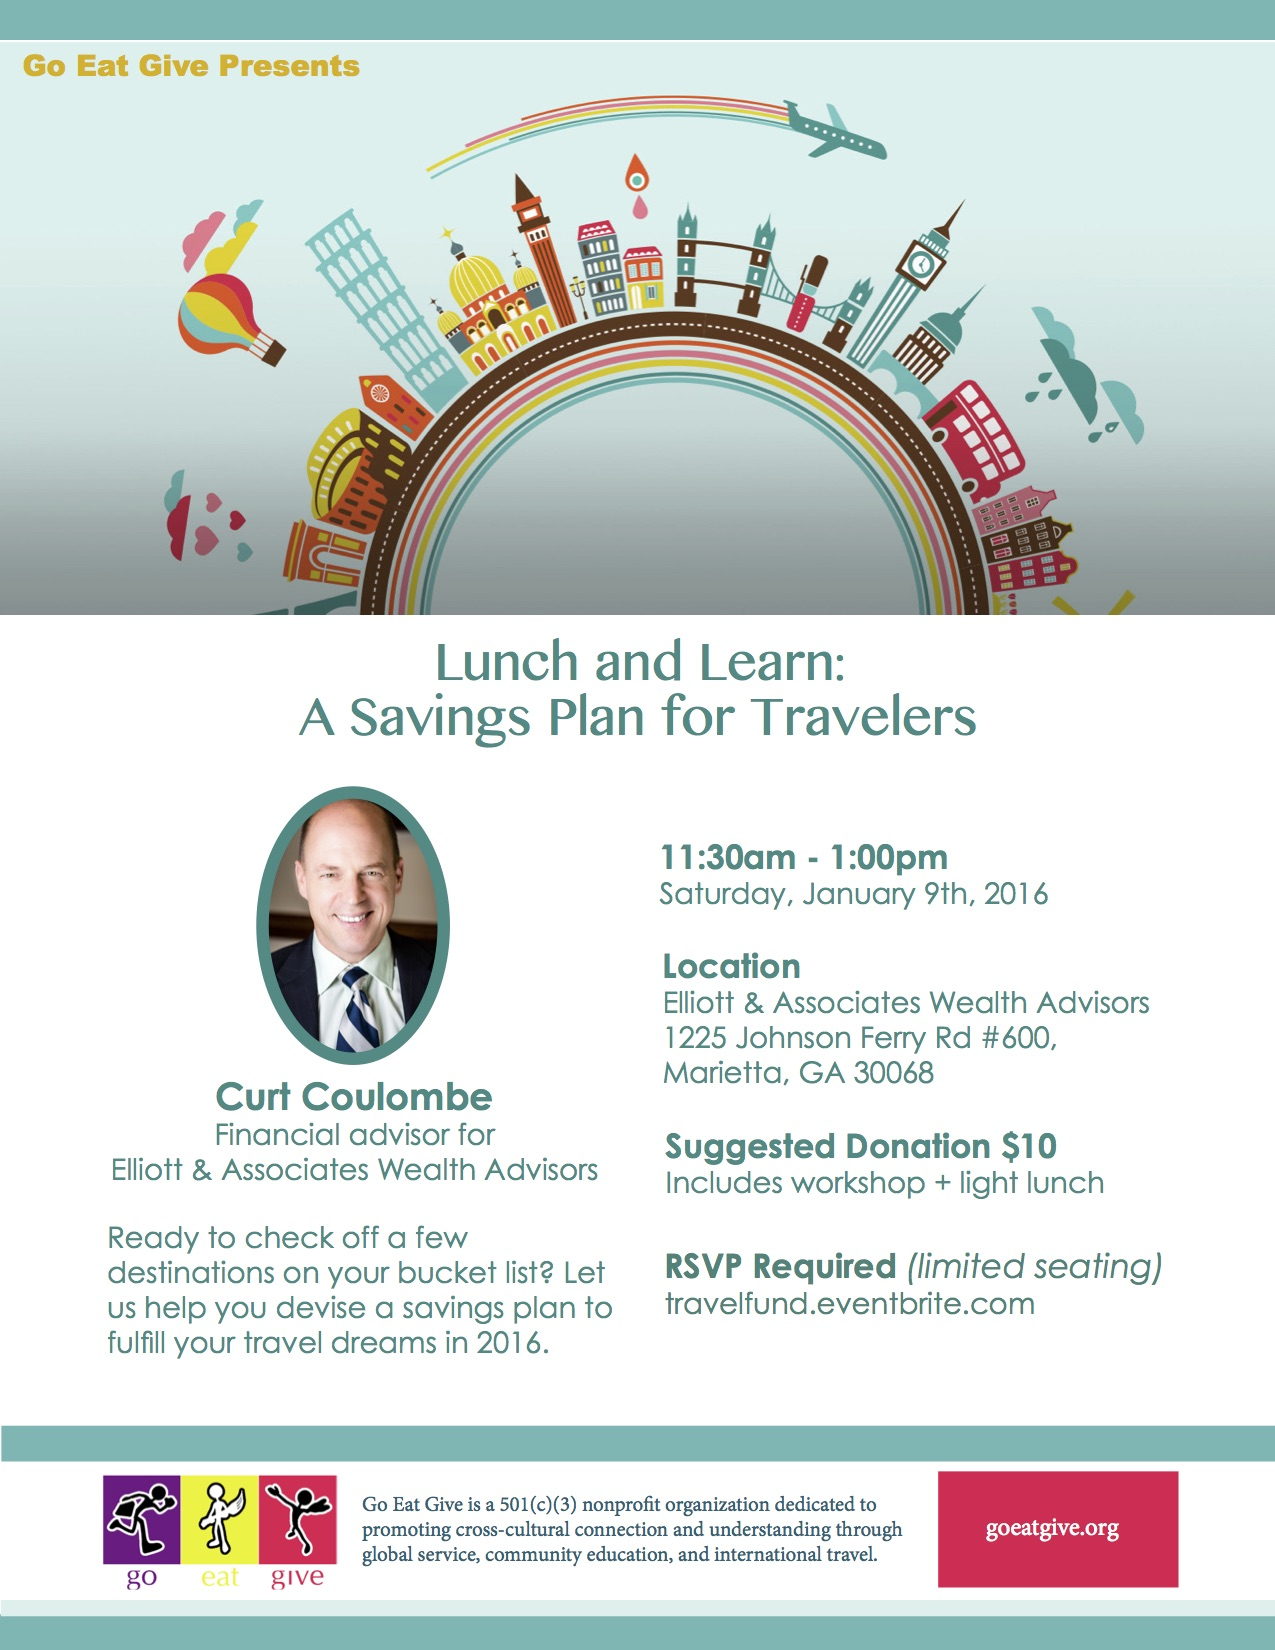 Lunch and Learn: A Savings Plan for Travelers